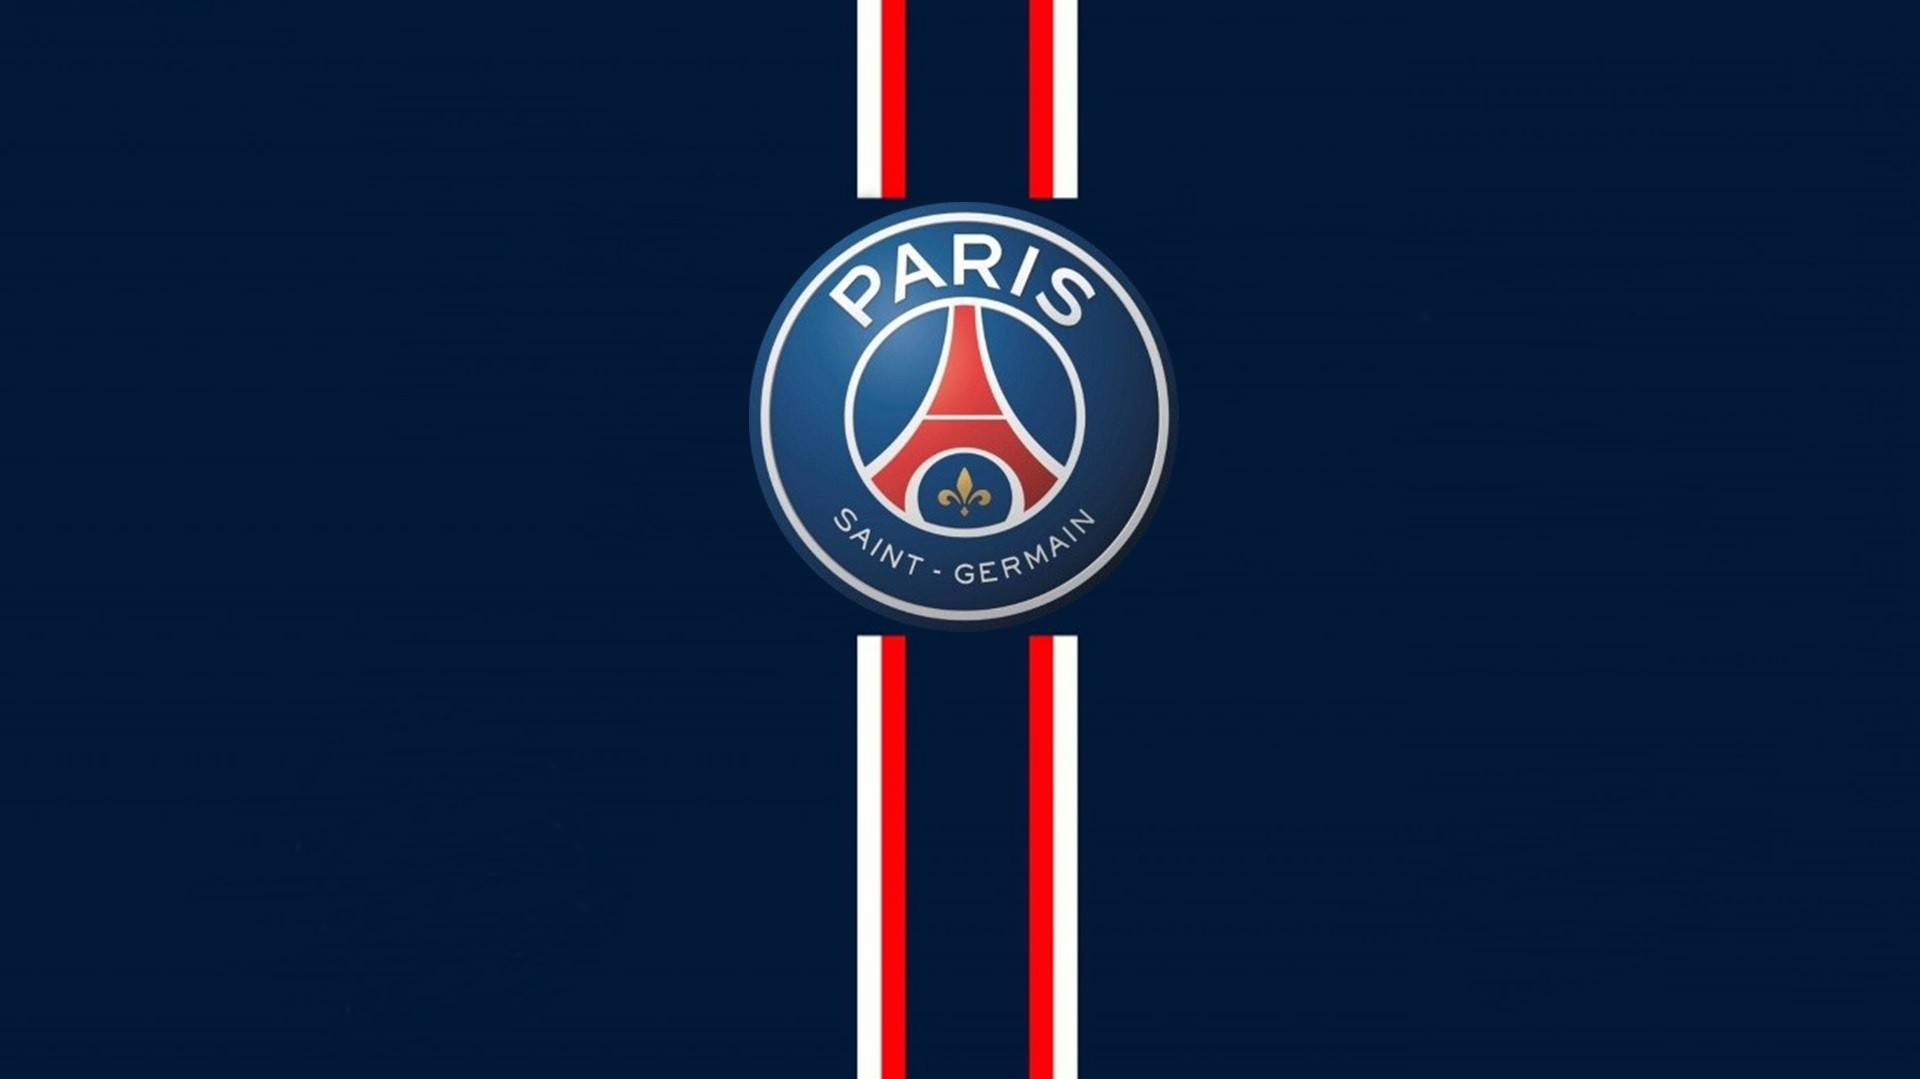 Manchester United 3d Wallpaper For Iphone Paris Saint Germain Soccer Sports Soccer Clubs France